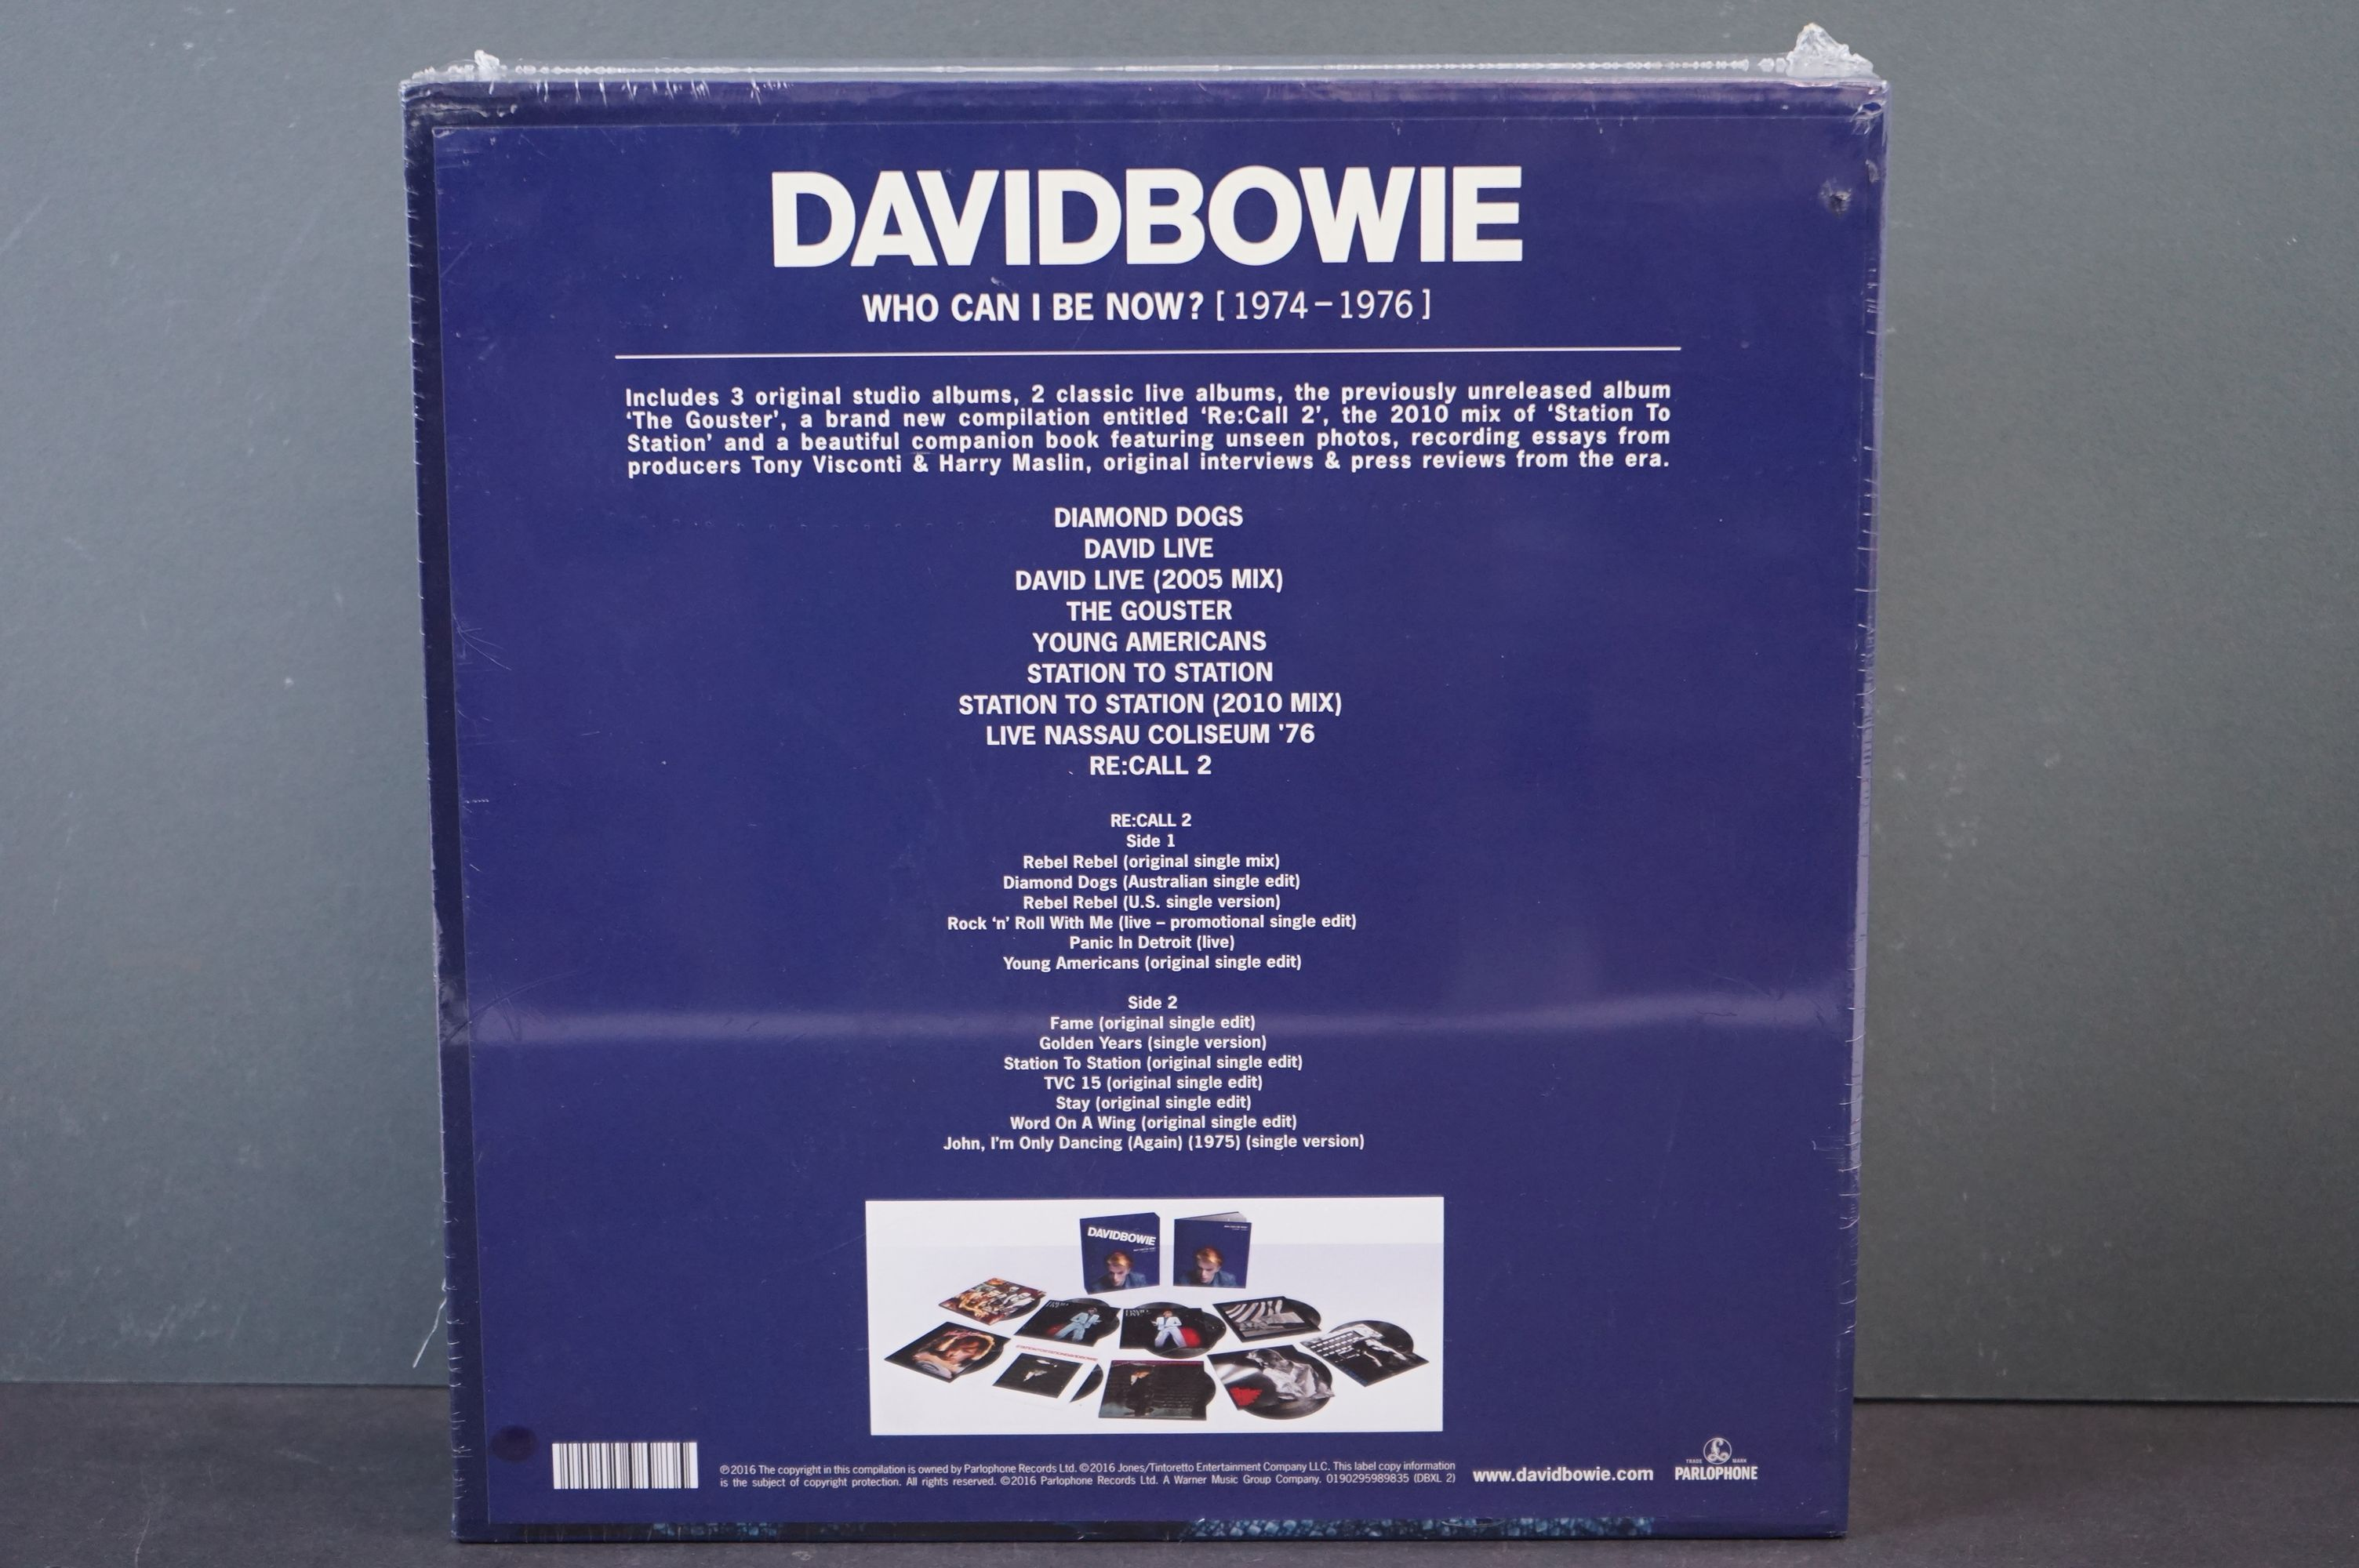 Vinyl - David Bowie Who Can I Be Now? (1974-1976) 9 LP Box Set DBXL2, sealed - Image 2 of 3